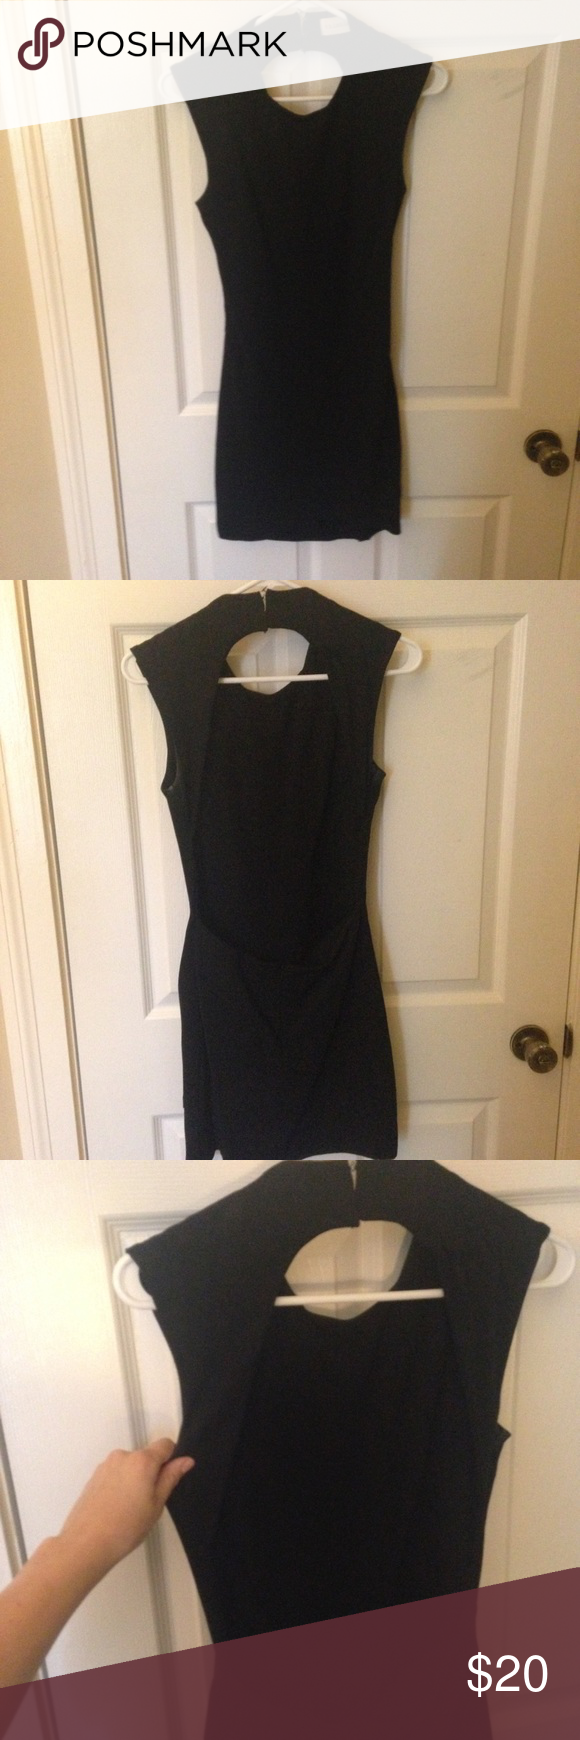 PERFECT little black dress with open back Little black dress with open back, super cute on! No pulls or snags and smoke free home! Worn once! Make an offer or bundle! Dresses Backless